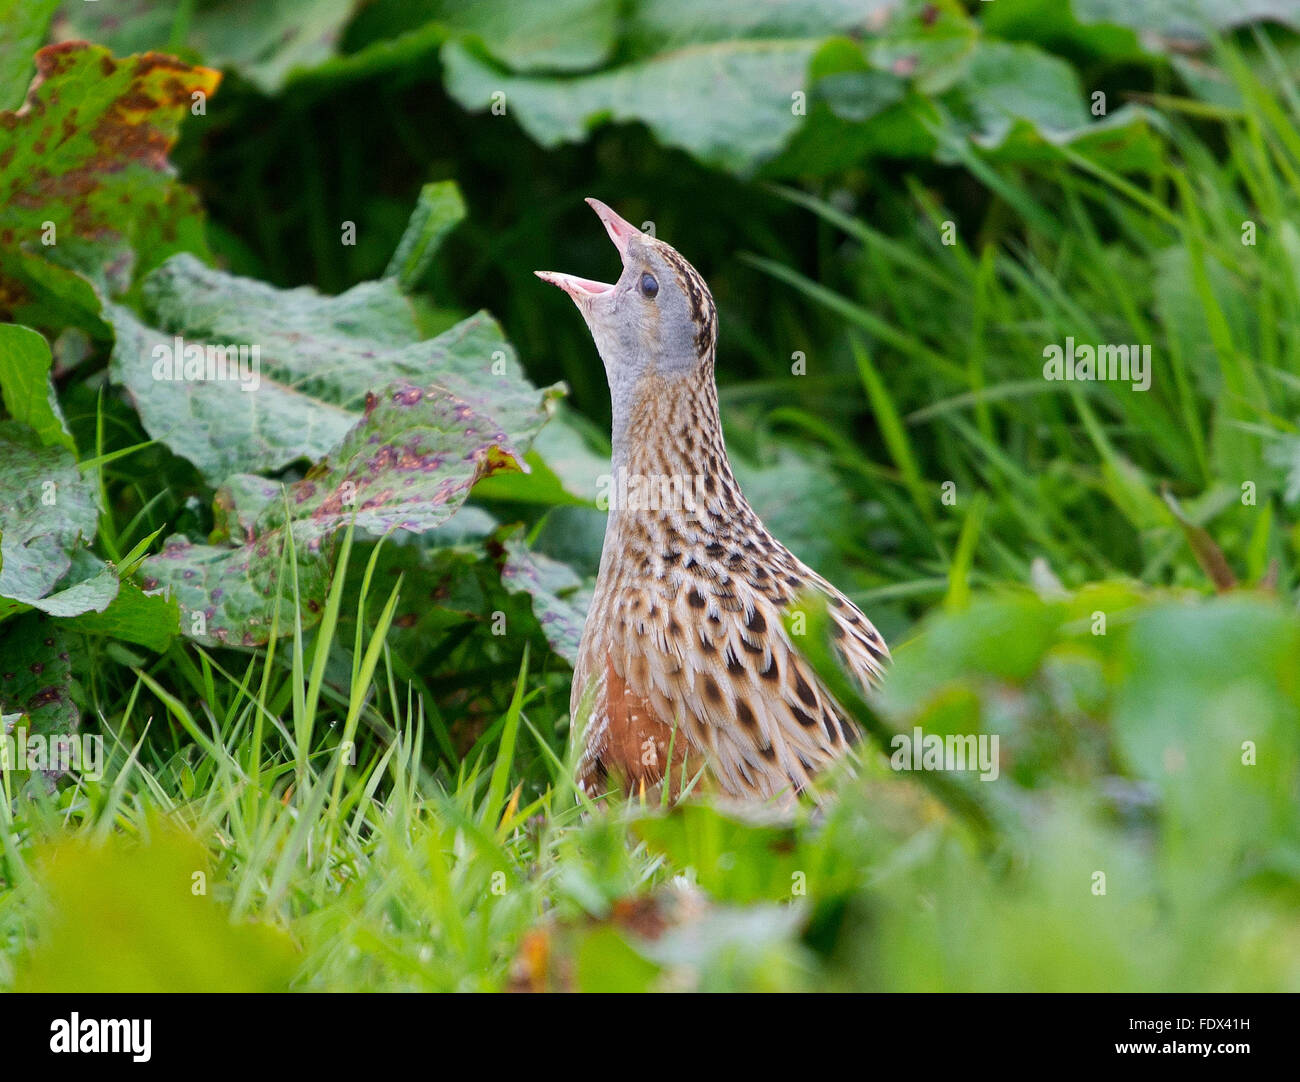 23rd May 2015, Balranald, North Uist, Outer Hebrides, Scotland, GB.  A Corncrake calling Balranald Nature Reserve, - Stock Image